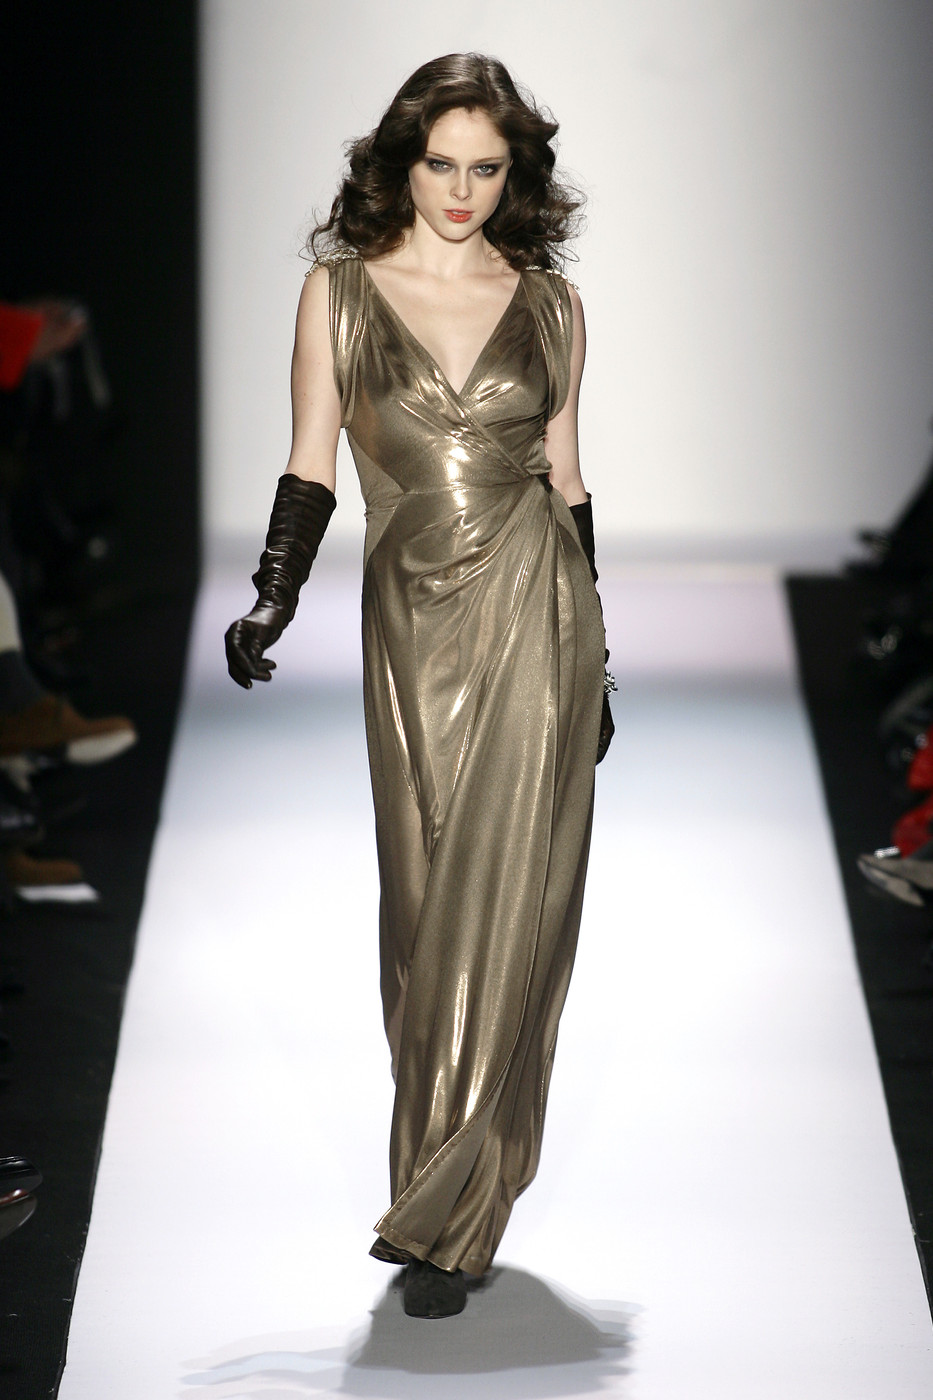 via fashioned by love | Diane von Furstenberg wrap-dress Fall/Winter 2008